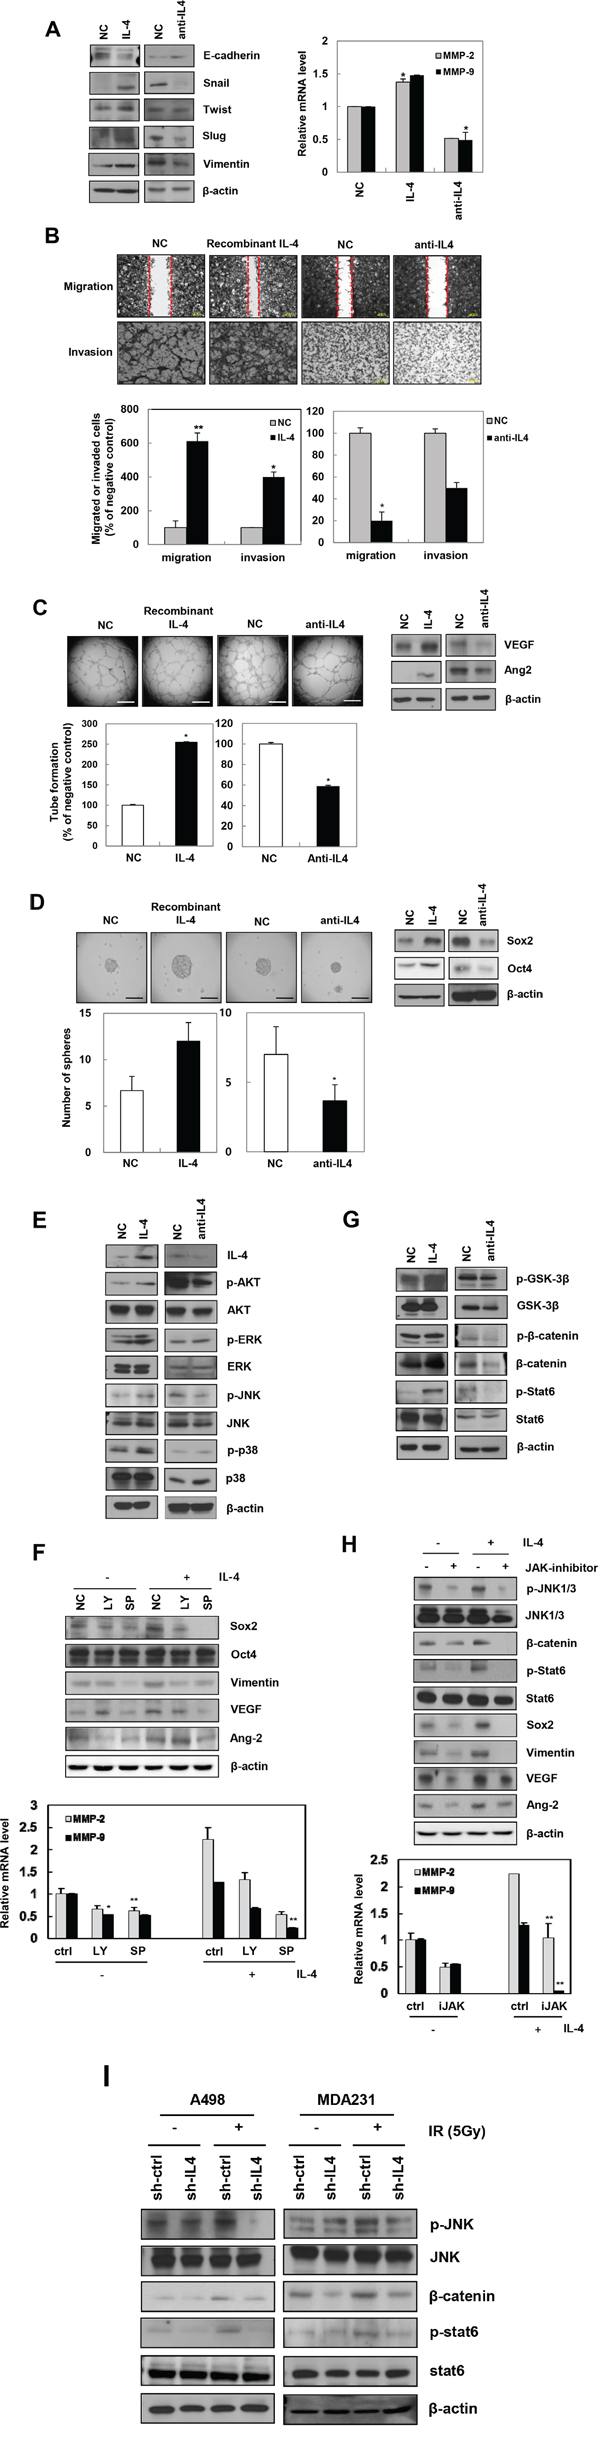 Recombinant IL-4 or neutralization of IL-4 using anti-IL-4 regulates EMT, migration, invasion, angiogenesis, and stemness in cancer cells.